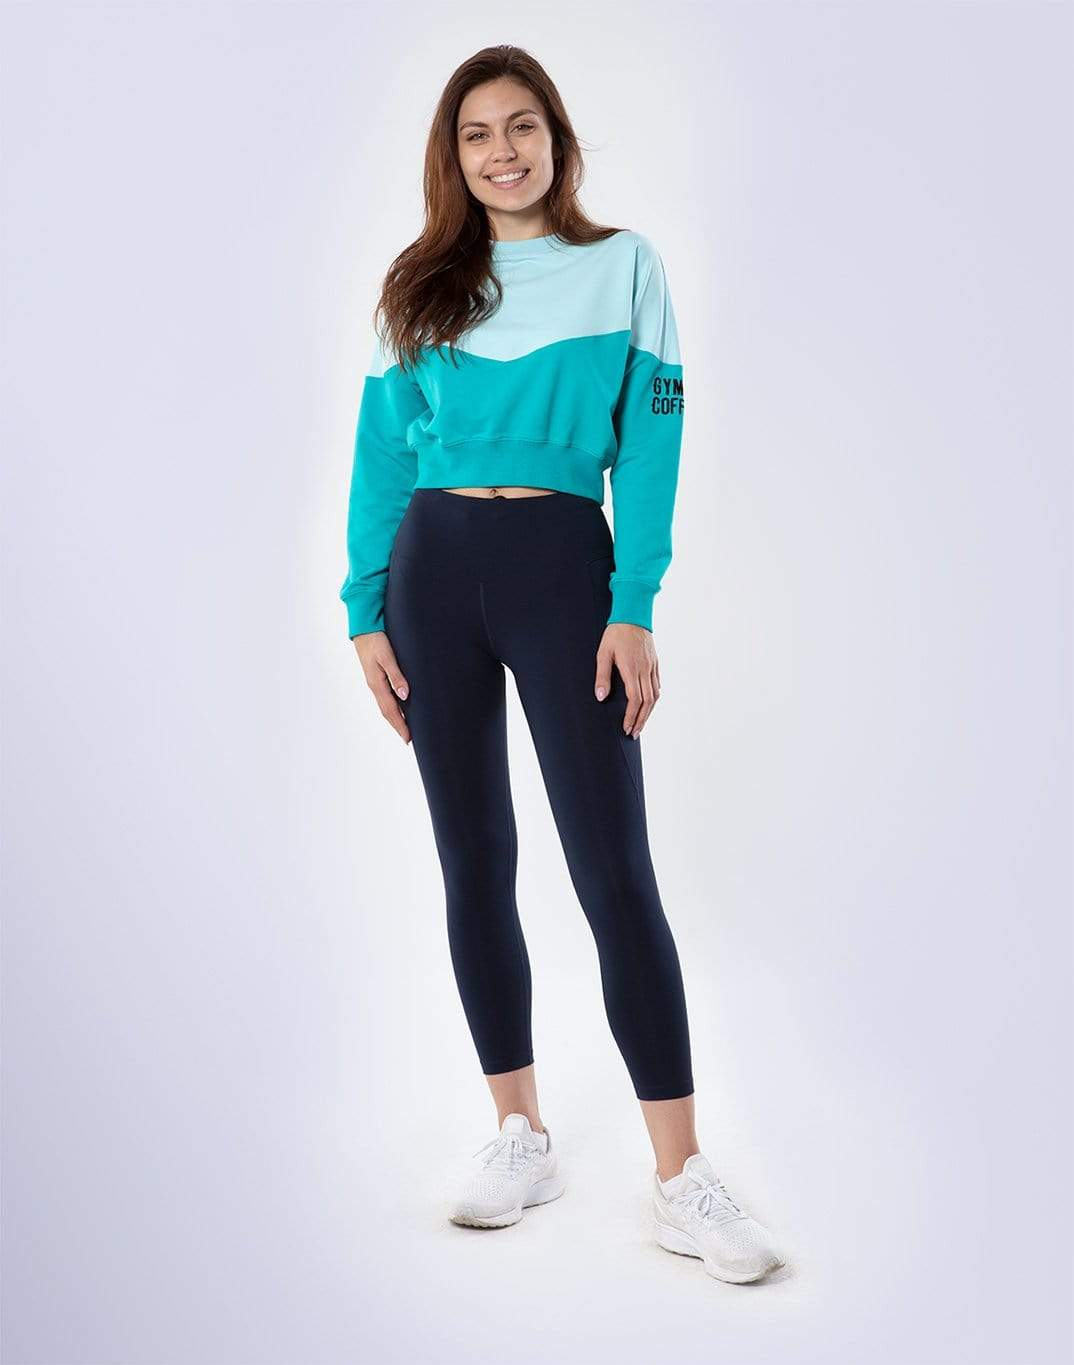 Gym Plus Coffee Hoodie Womens Relaxed Crew in Touquoise Mint Designed in Ireland